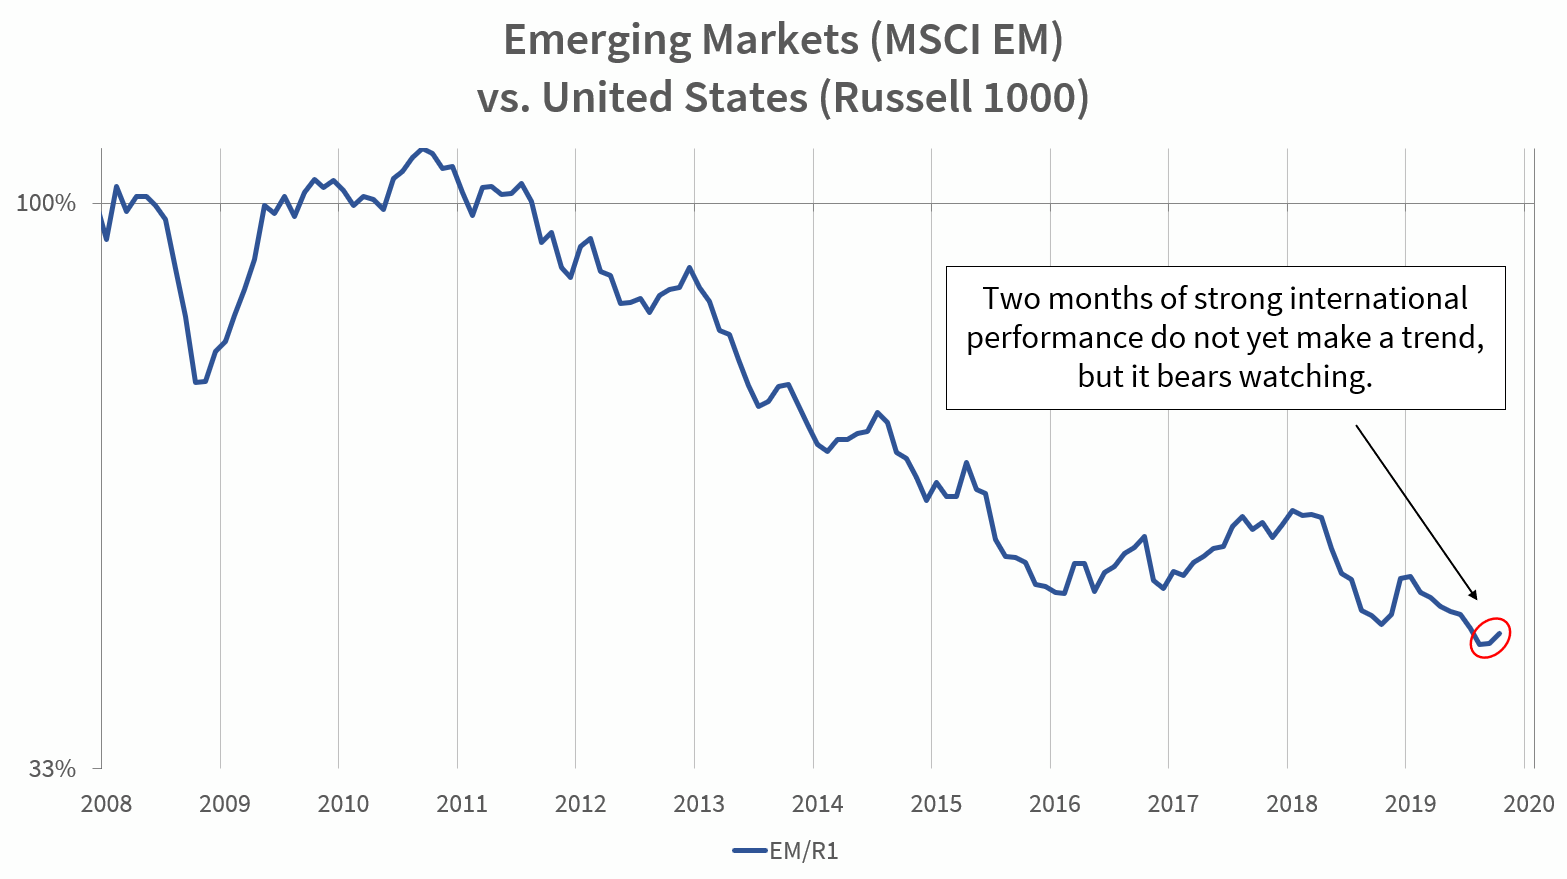 Emerging Markets (MSCI EM) vs. United States (Russell 1000)